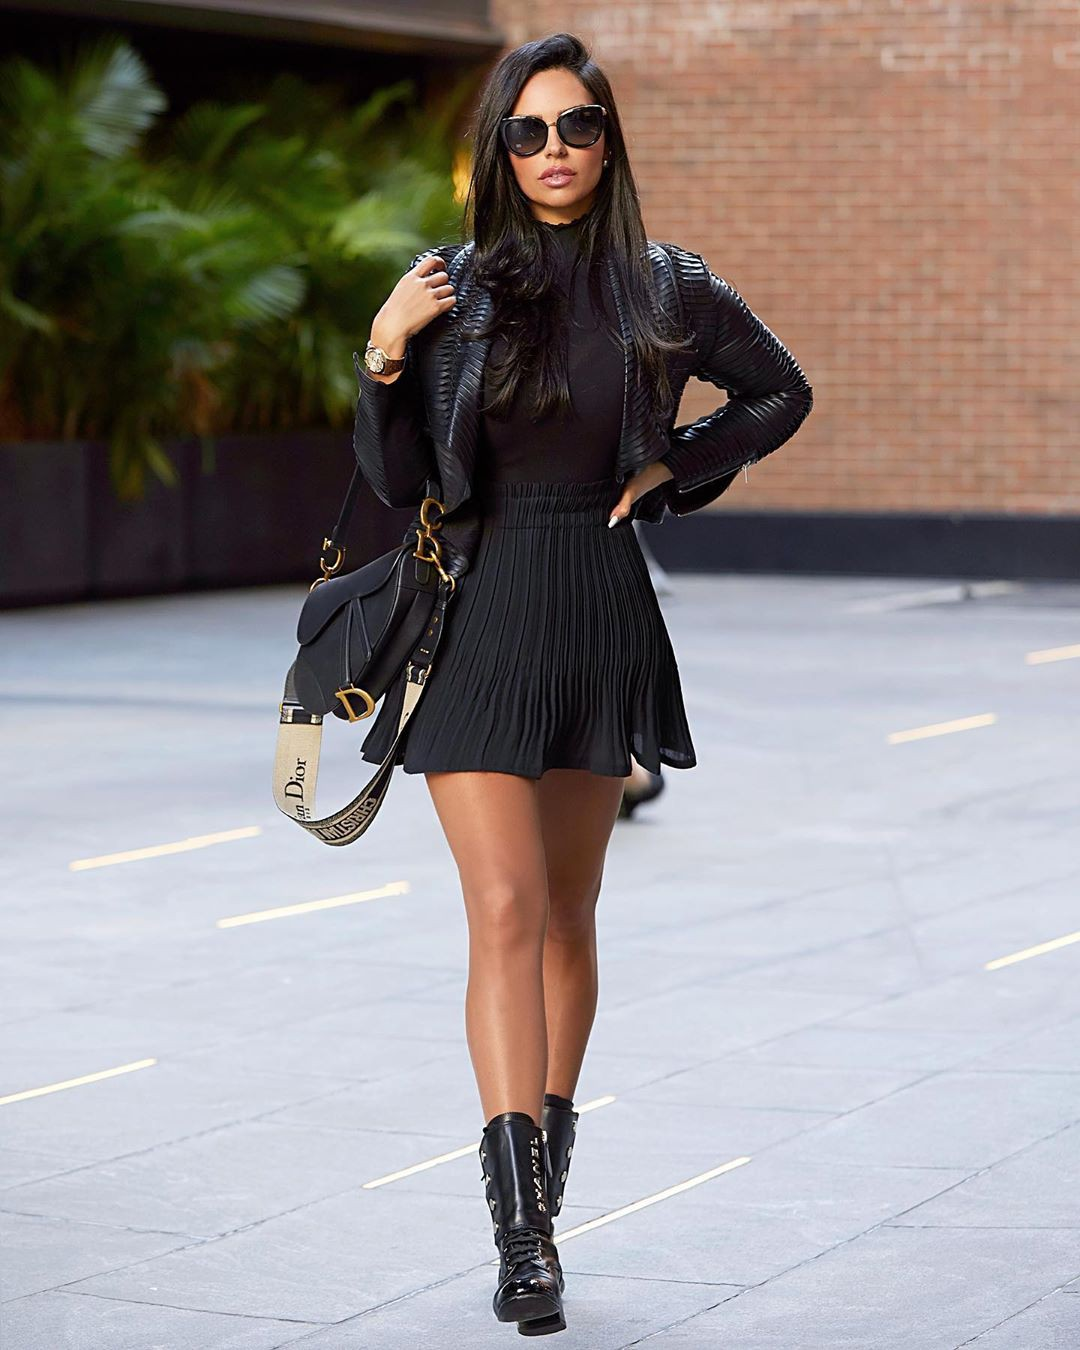 black colour outfit, you must try with leather leather, legs pic, attire ideas